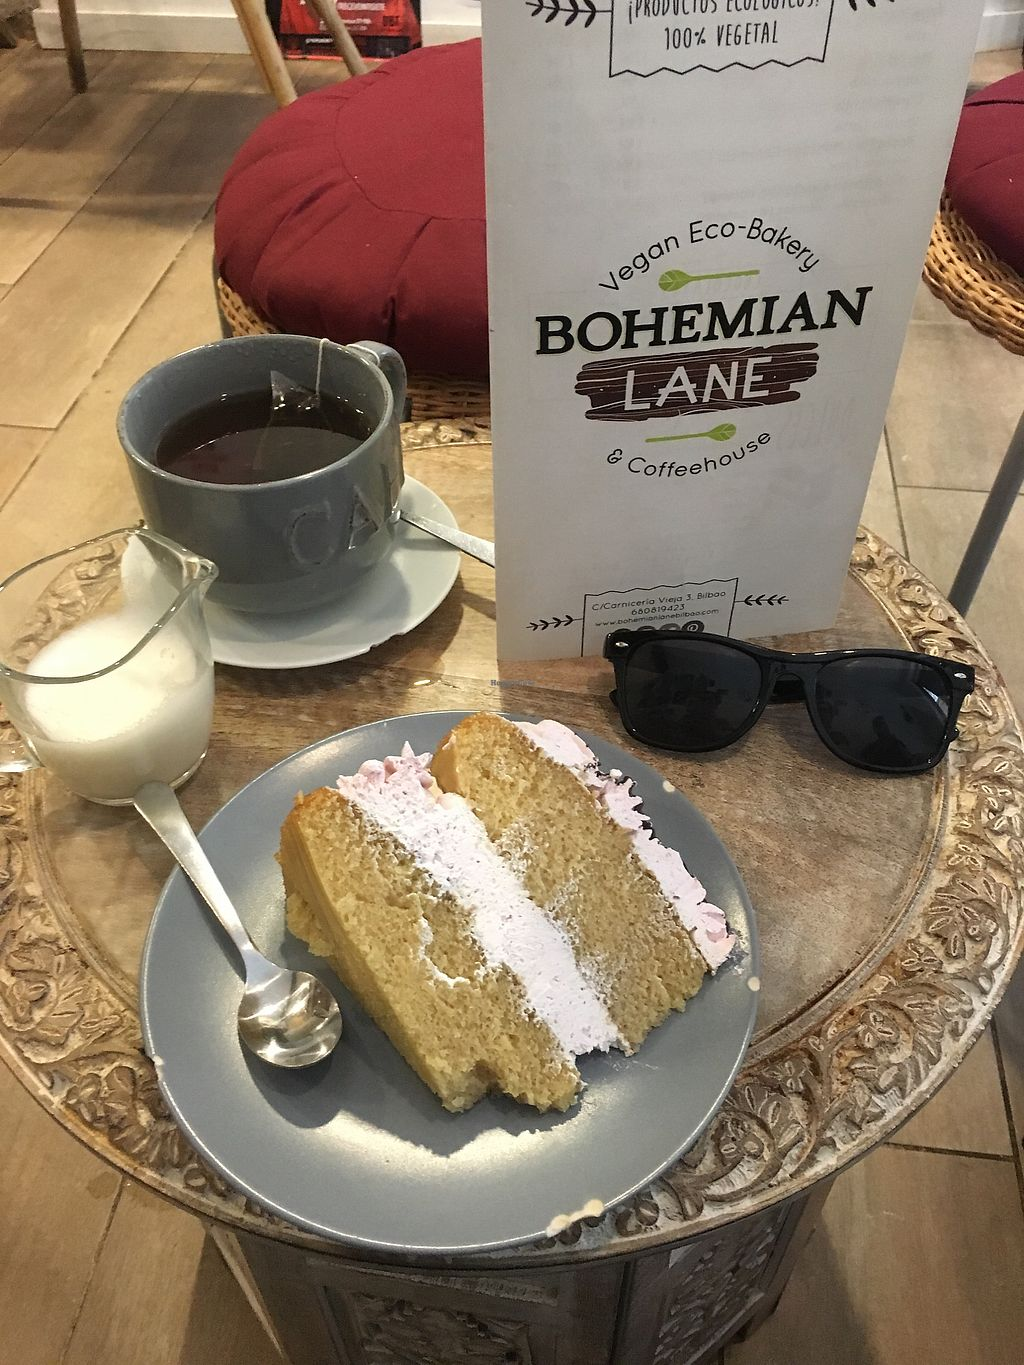 """Photo of Bohemian Lane  by <a href=""""/members/profile/MissRadish"""">MissRadish</a> <br/>Slice of heaven! <br/> July 6, 2017  - <a href='/contact/abuse/image/54543/277135'>Report</a>"""